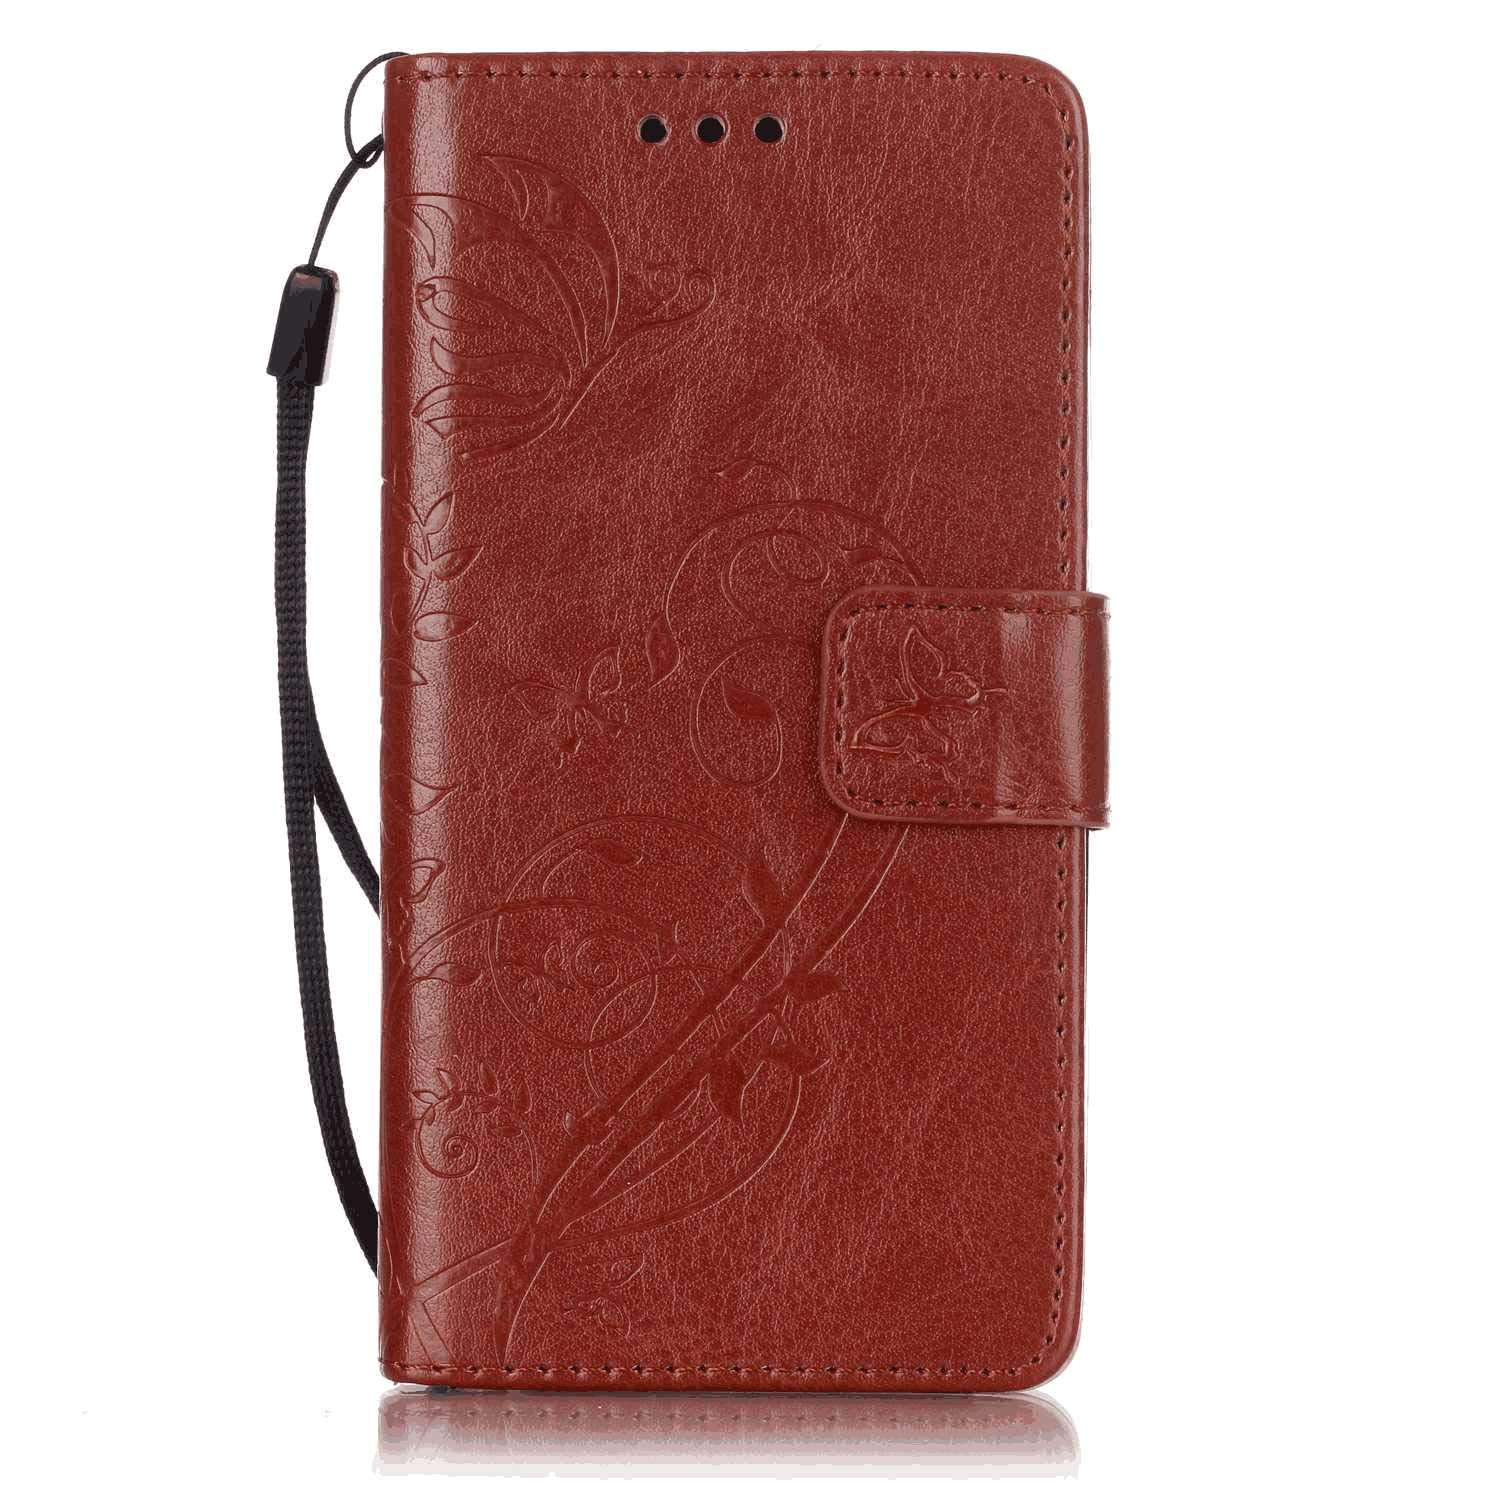 Cover for Huawei P20 Pro Leather Mobile Phone case Kickstand Card Holders Extra-Shockproof Business with Free Waterproof-Bag Huawei P20 Pro Flip Case